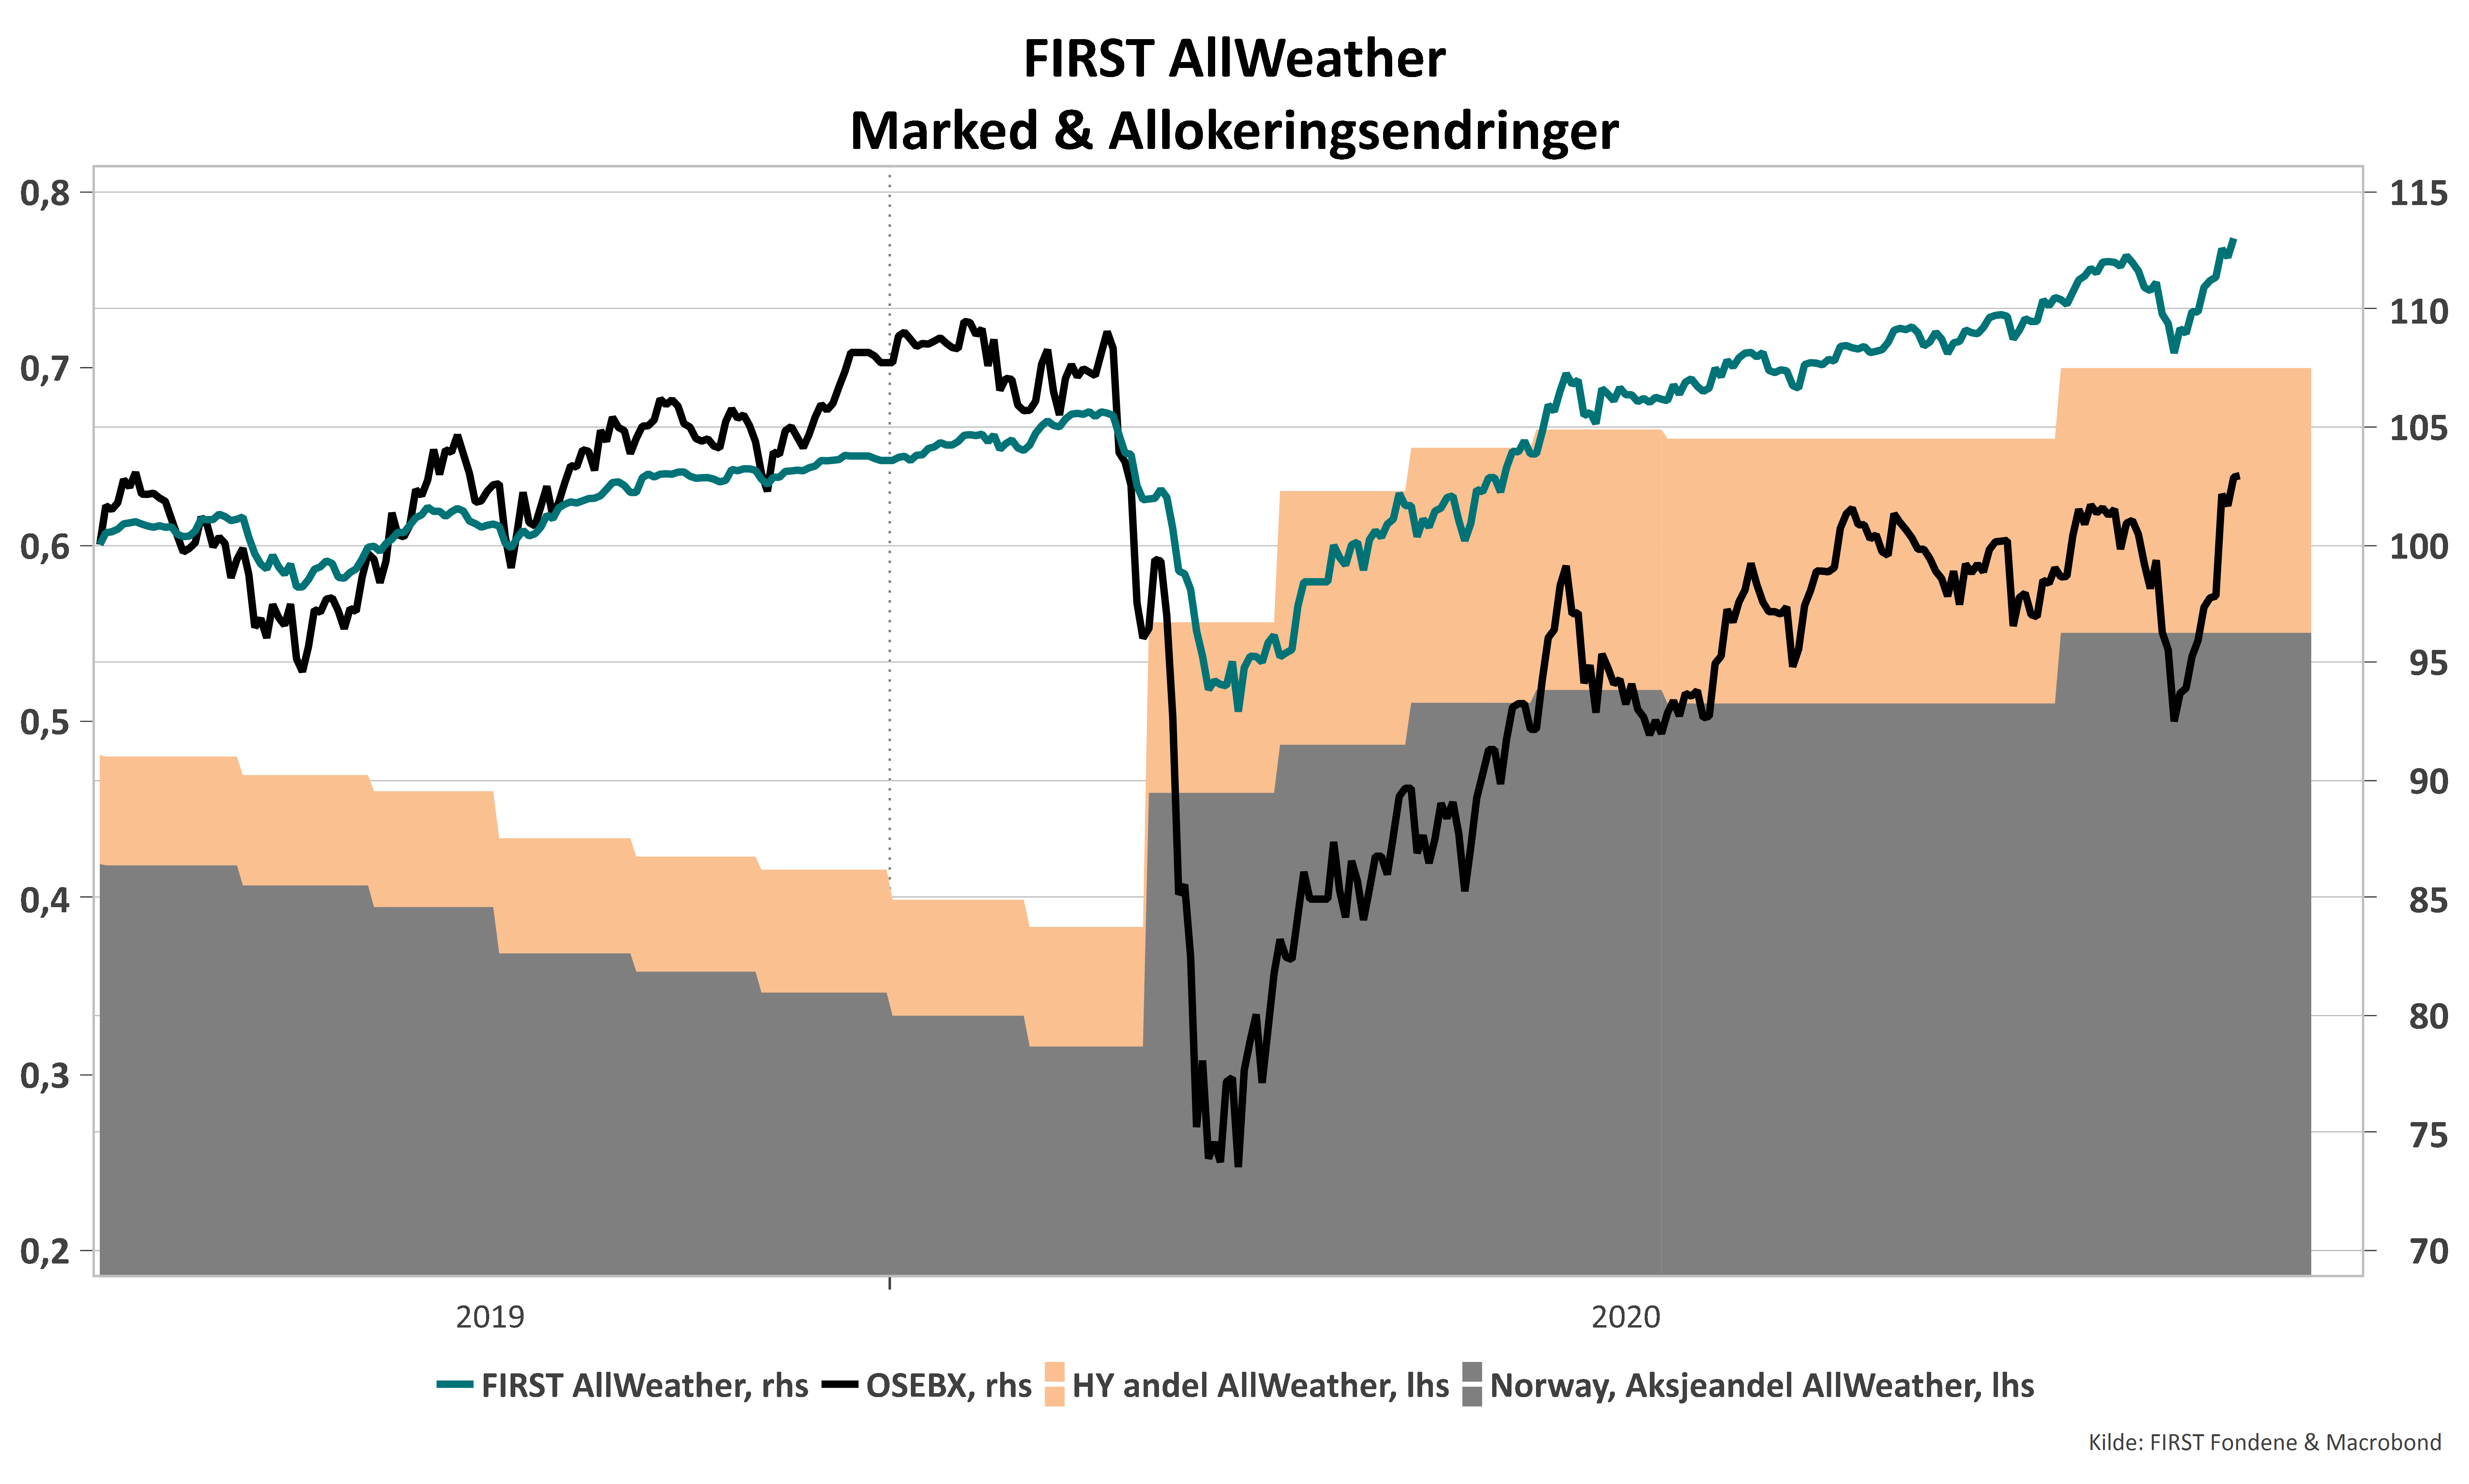 FIRST All Weather vs Market